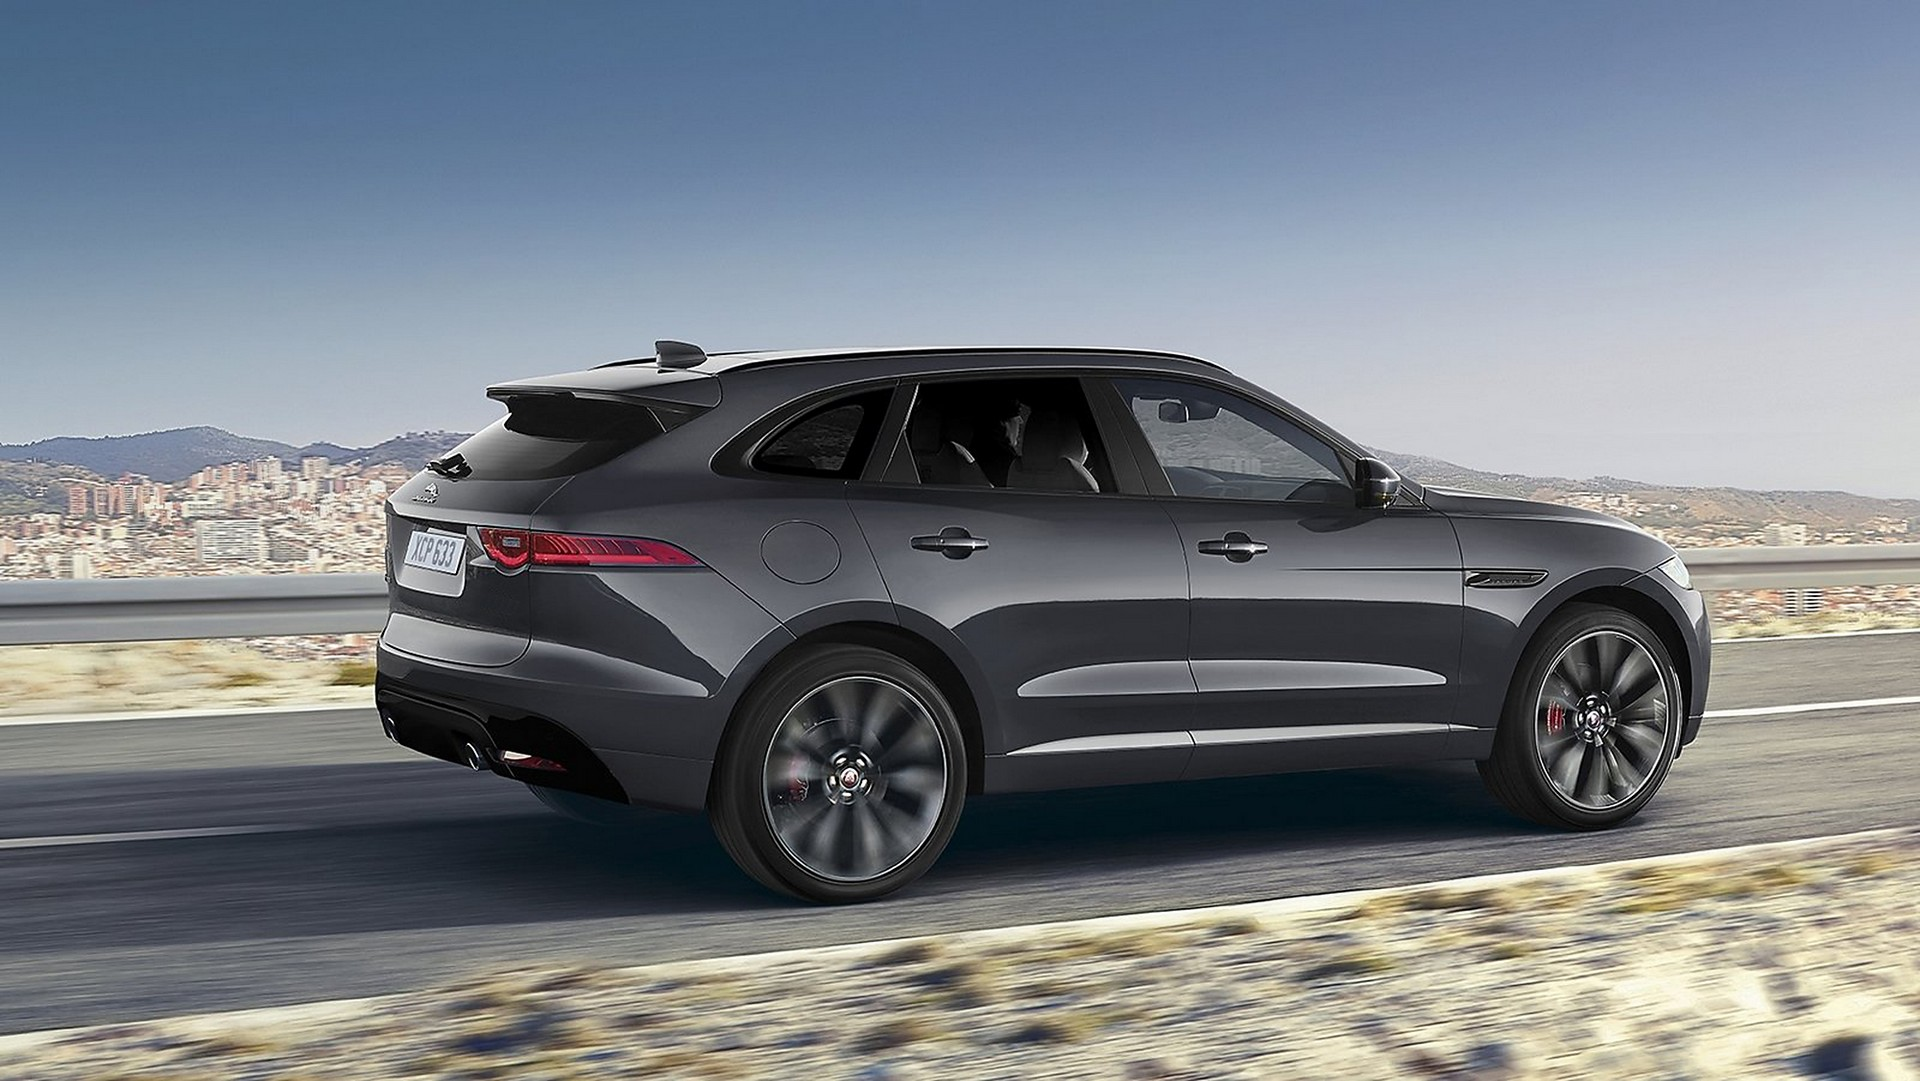 jaguar f pace dark sport edition 150 esemplari a tiratura limitata. Black Bedroom Furniture Sets. Home Design Ideas